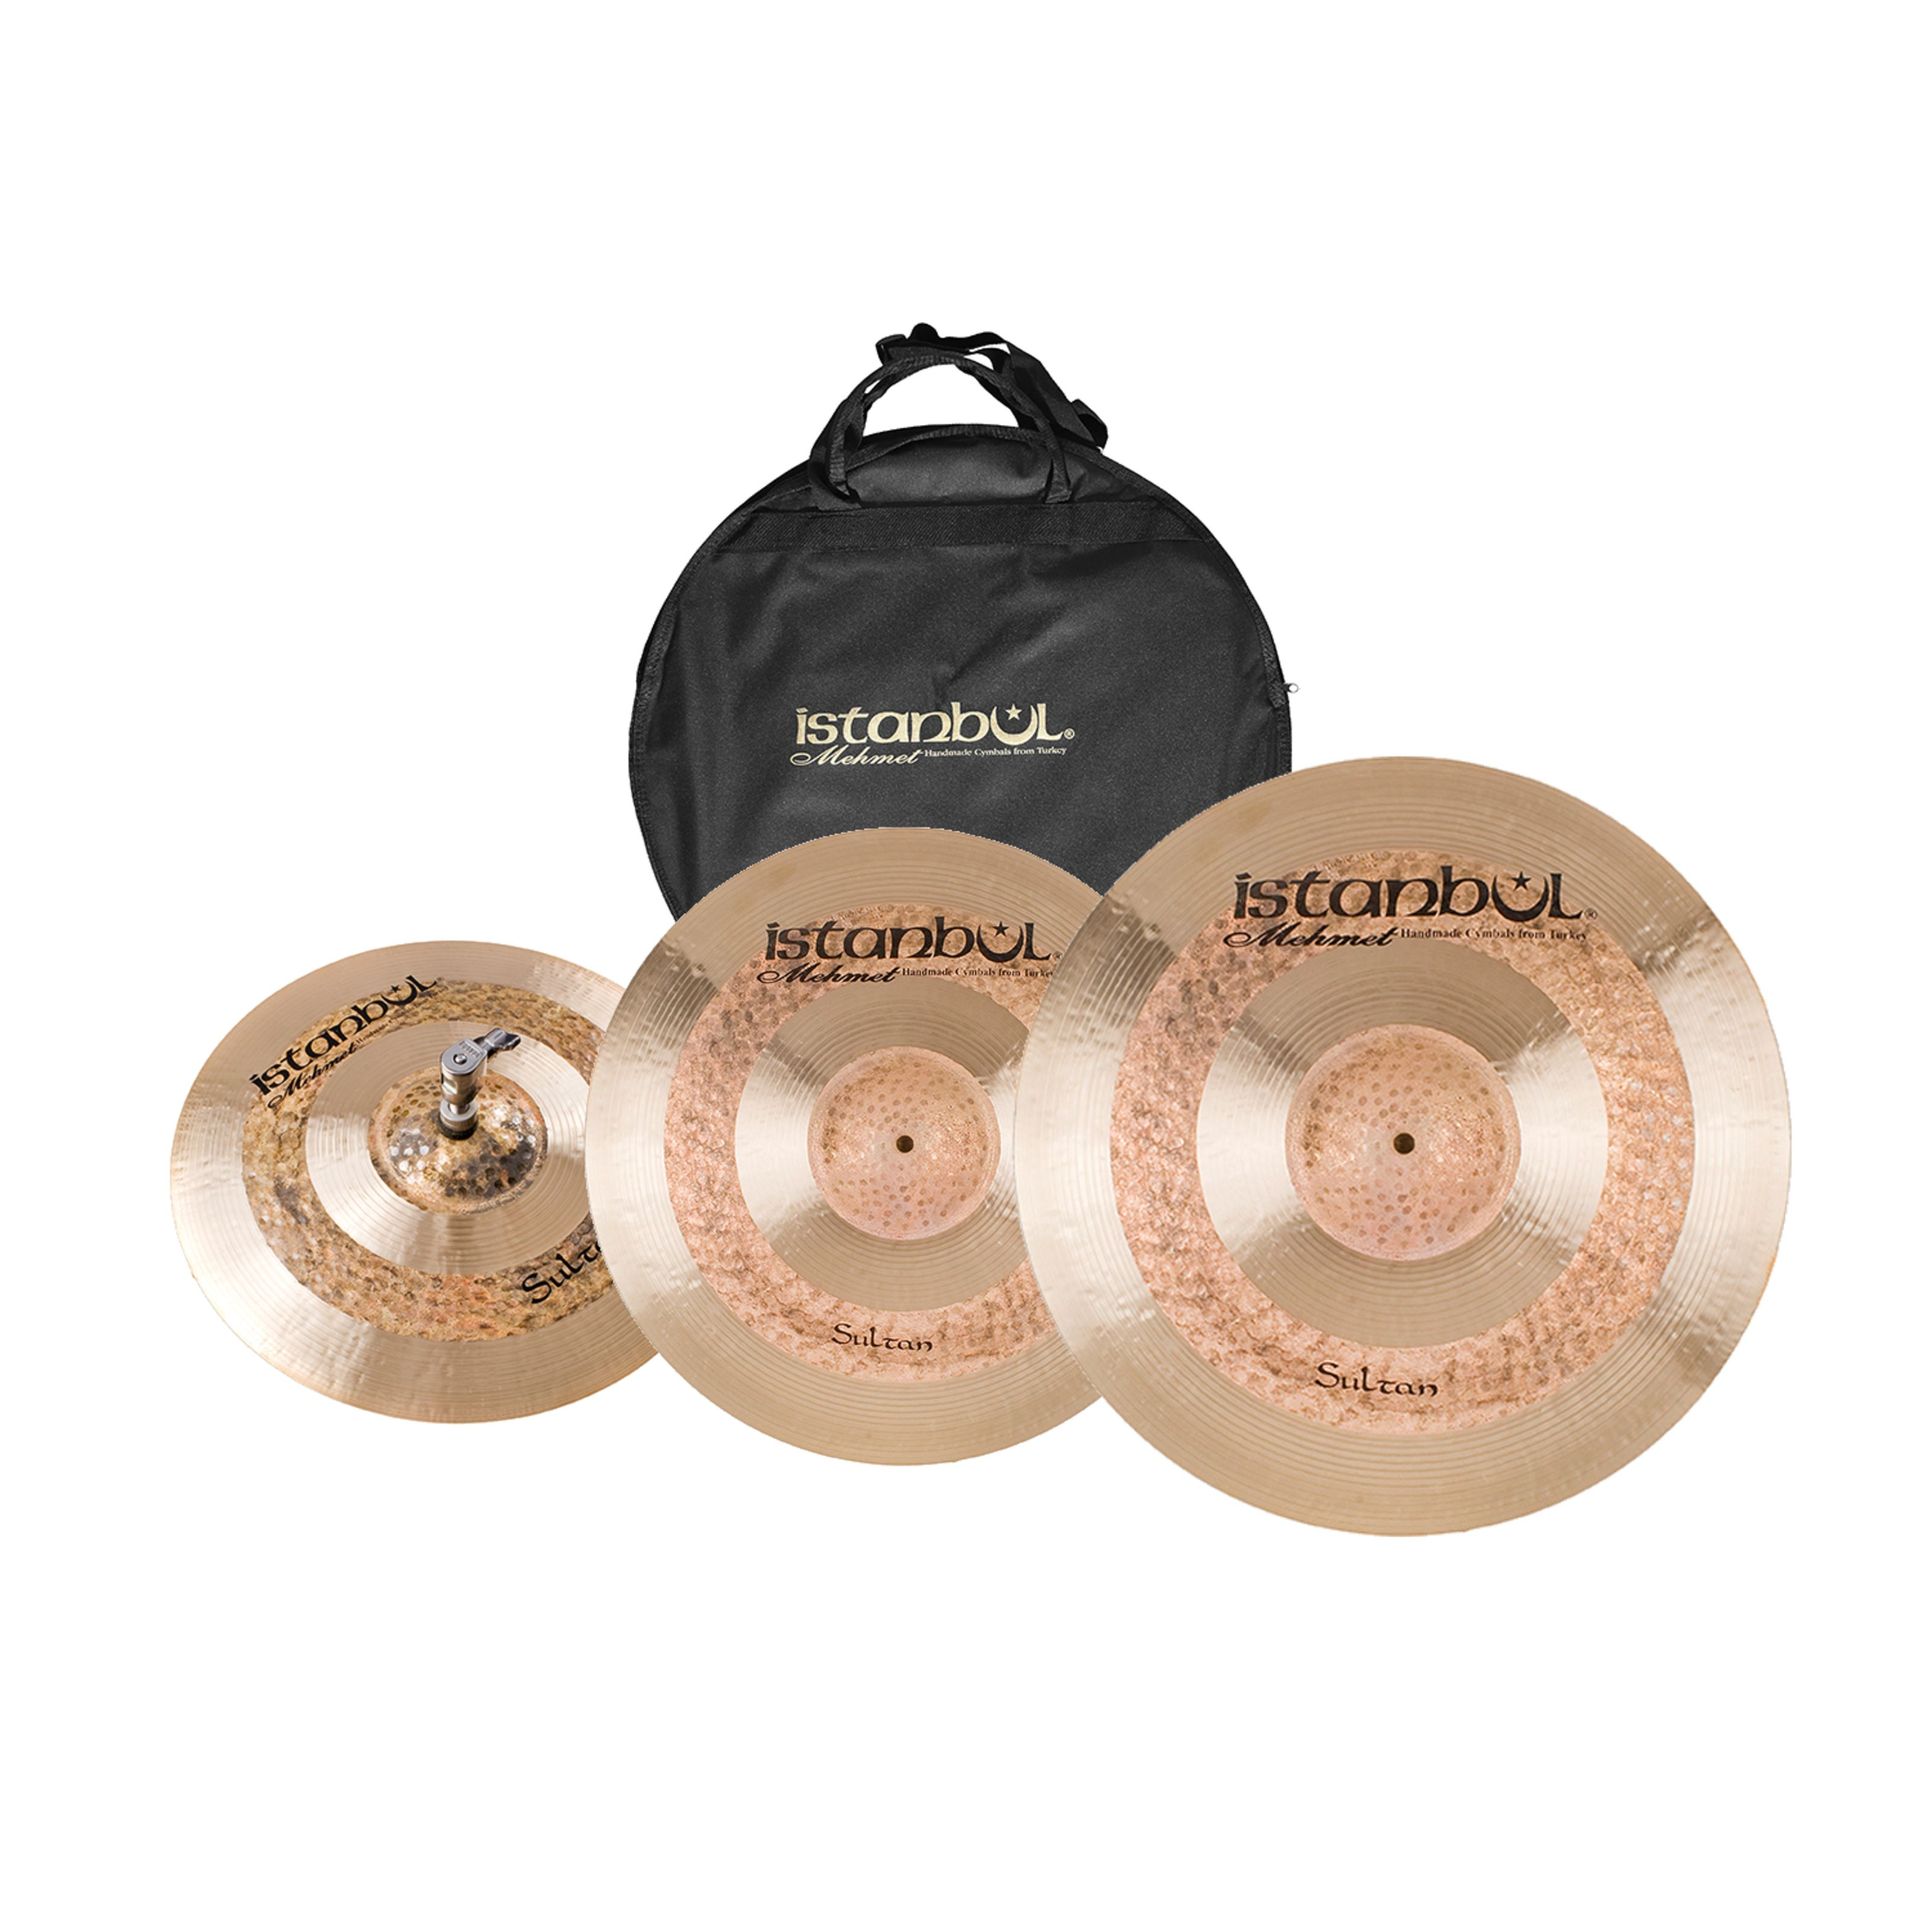 Istanbul - Sultan Cymbal Set SUL-SET